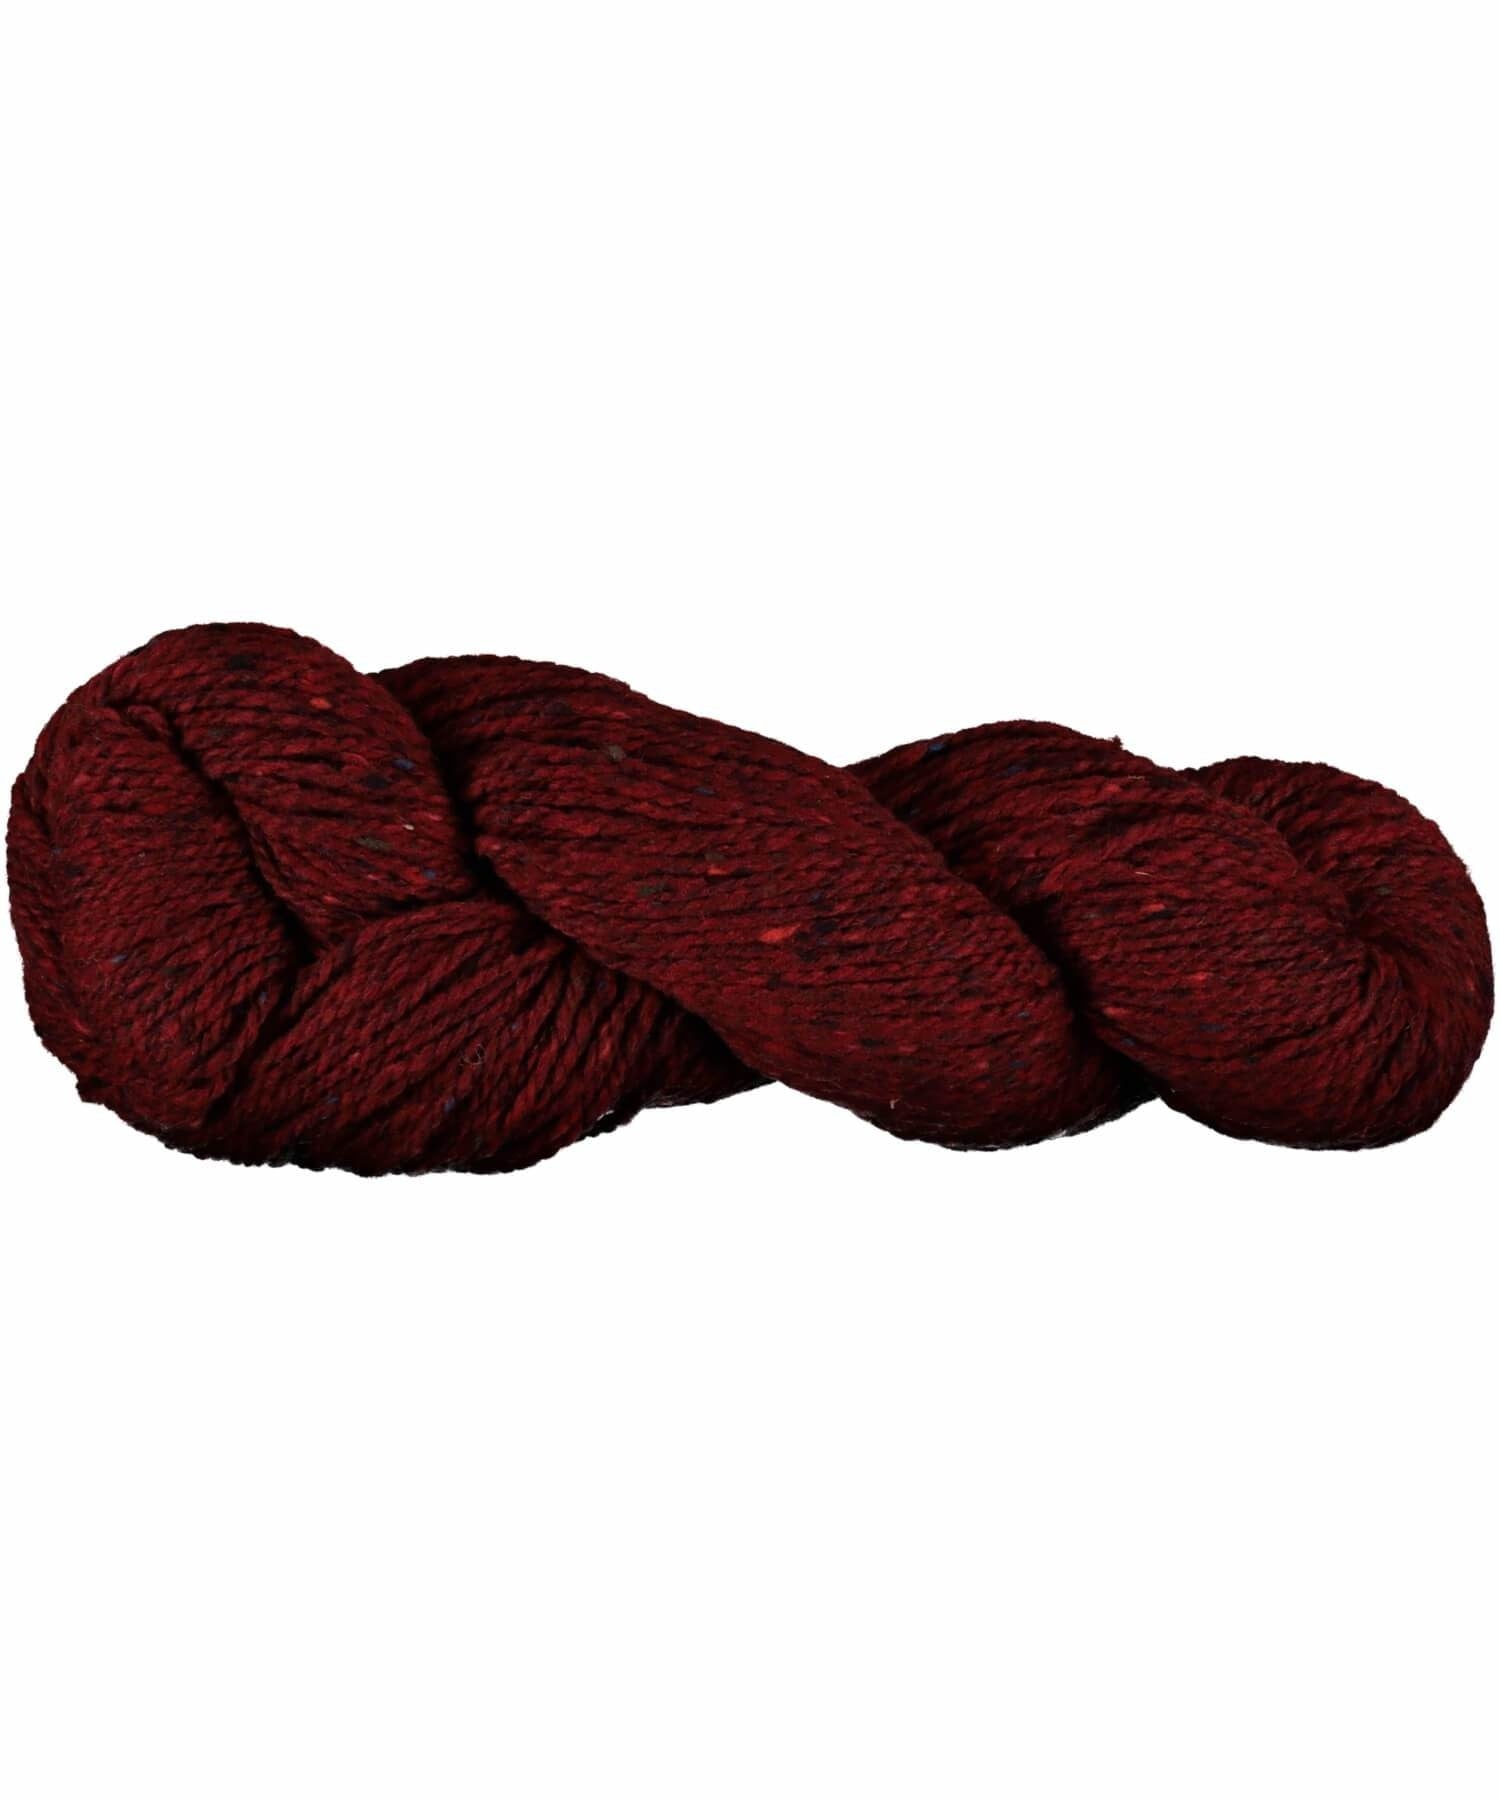 Soft Donegal Yarn - Deep Red - [Studio Donegal] - Knitting - Irish Gifts